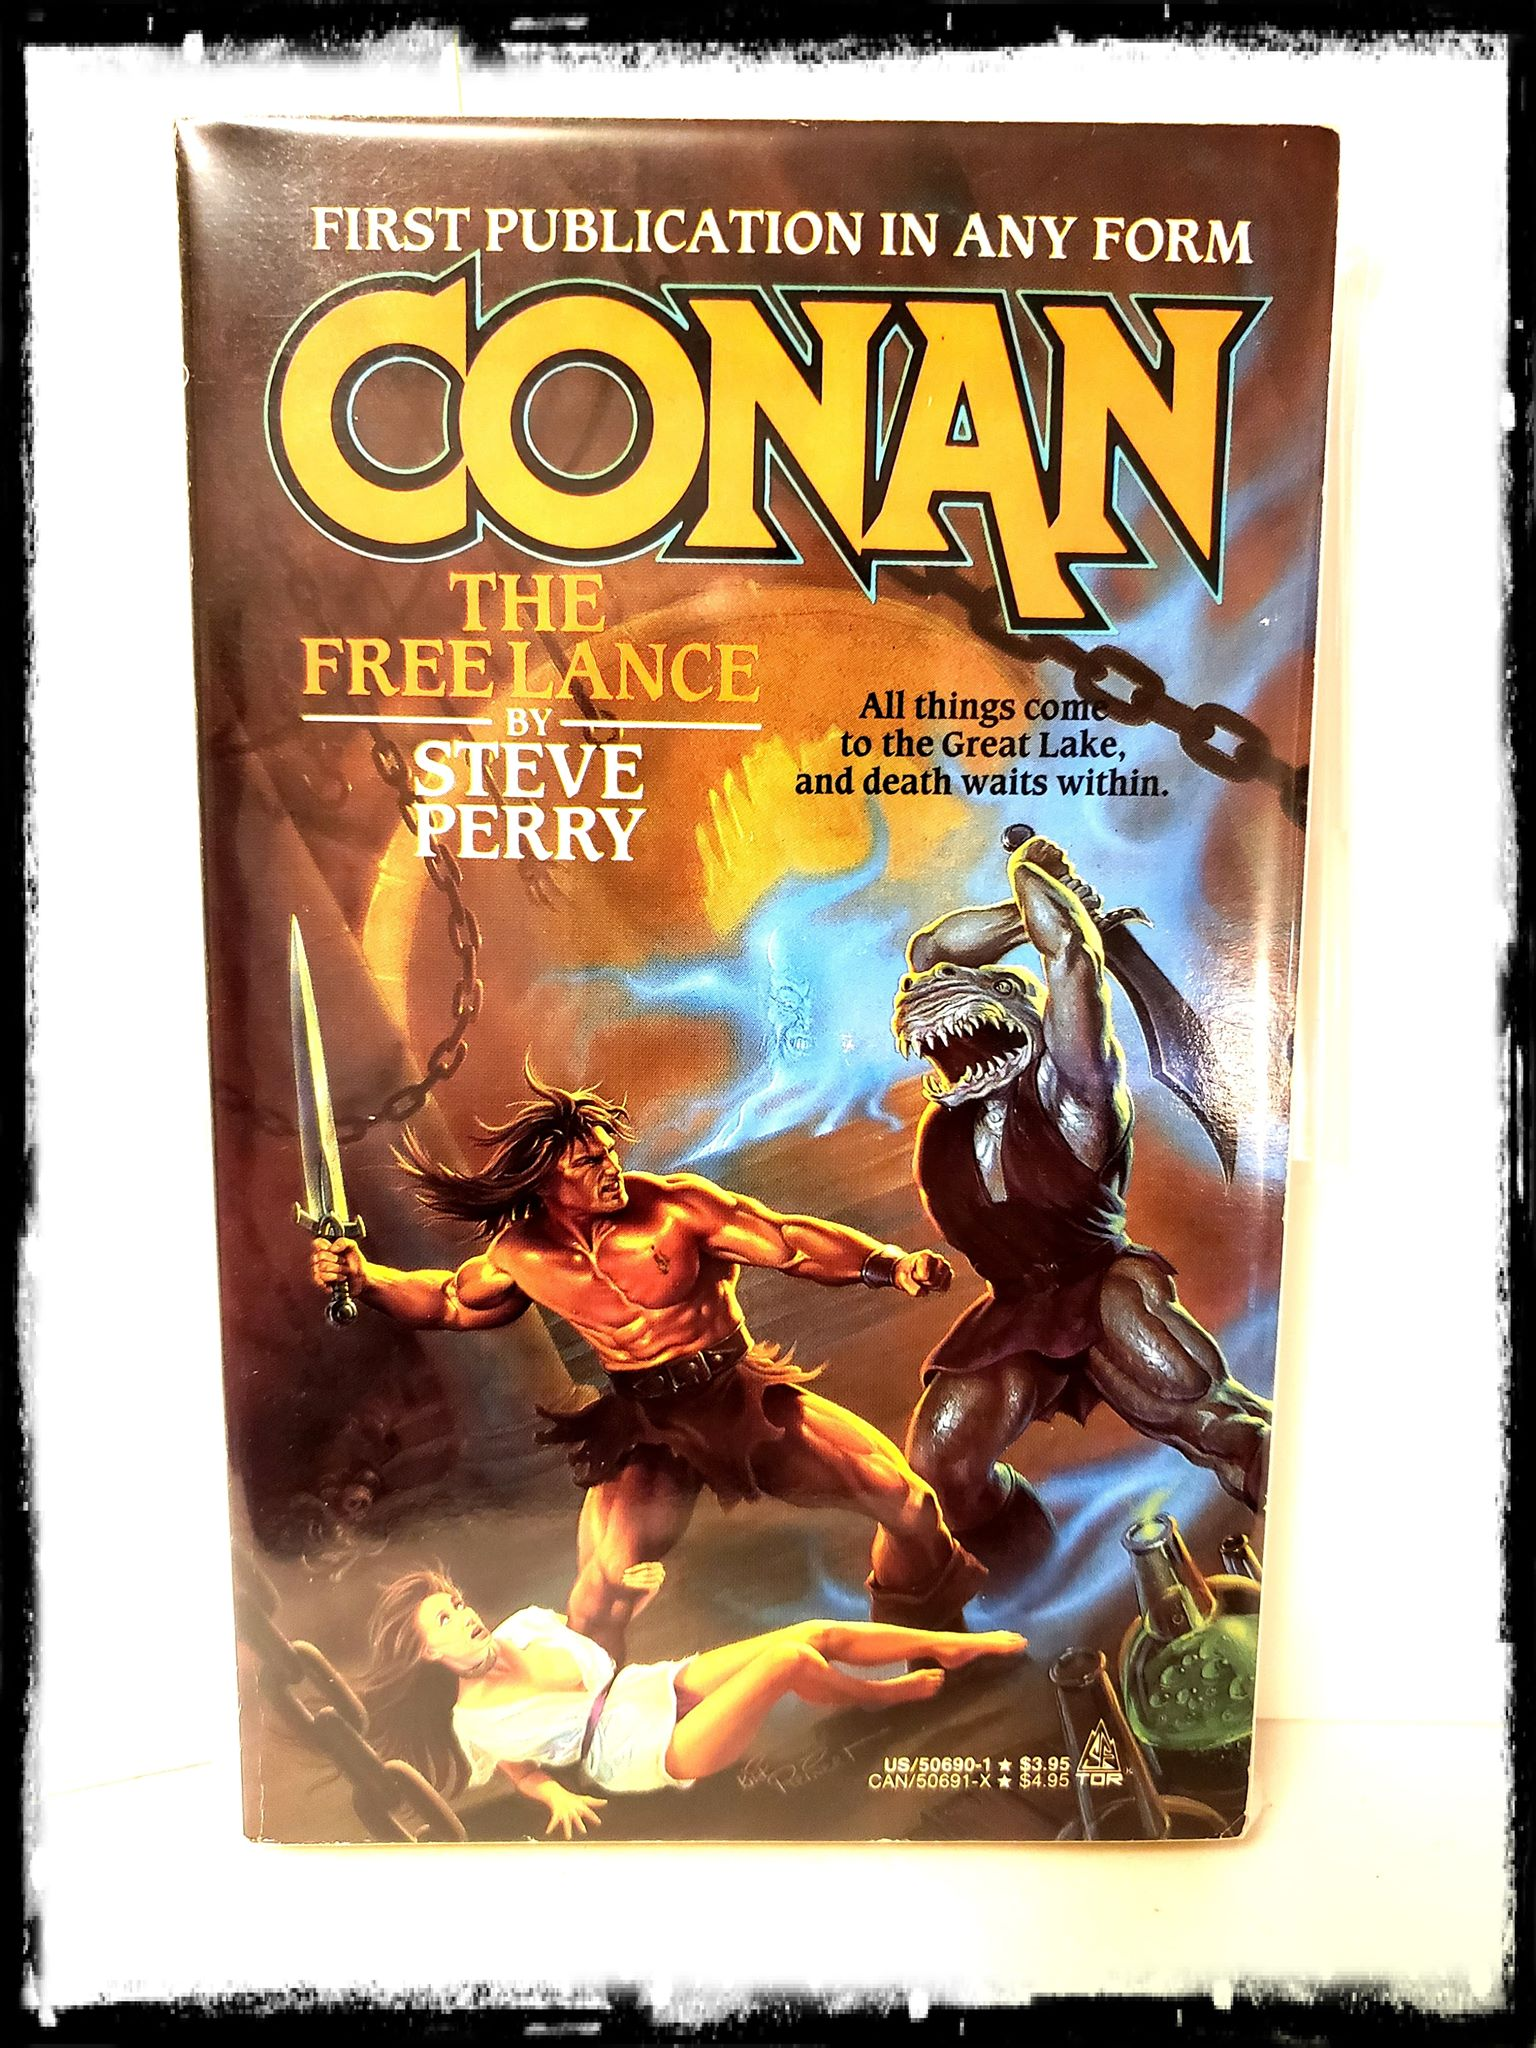 CONAN - THE FREE LANCE (1990 - STEVE PERRY) PAPERBACK